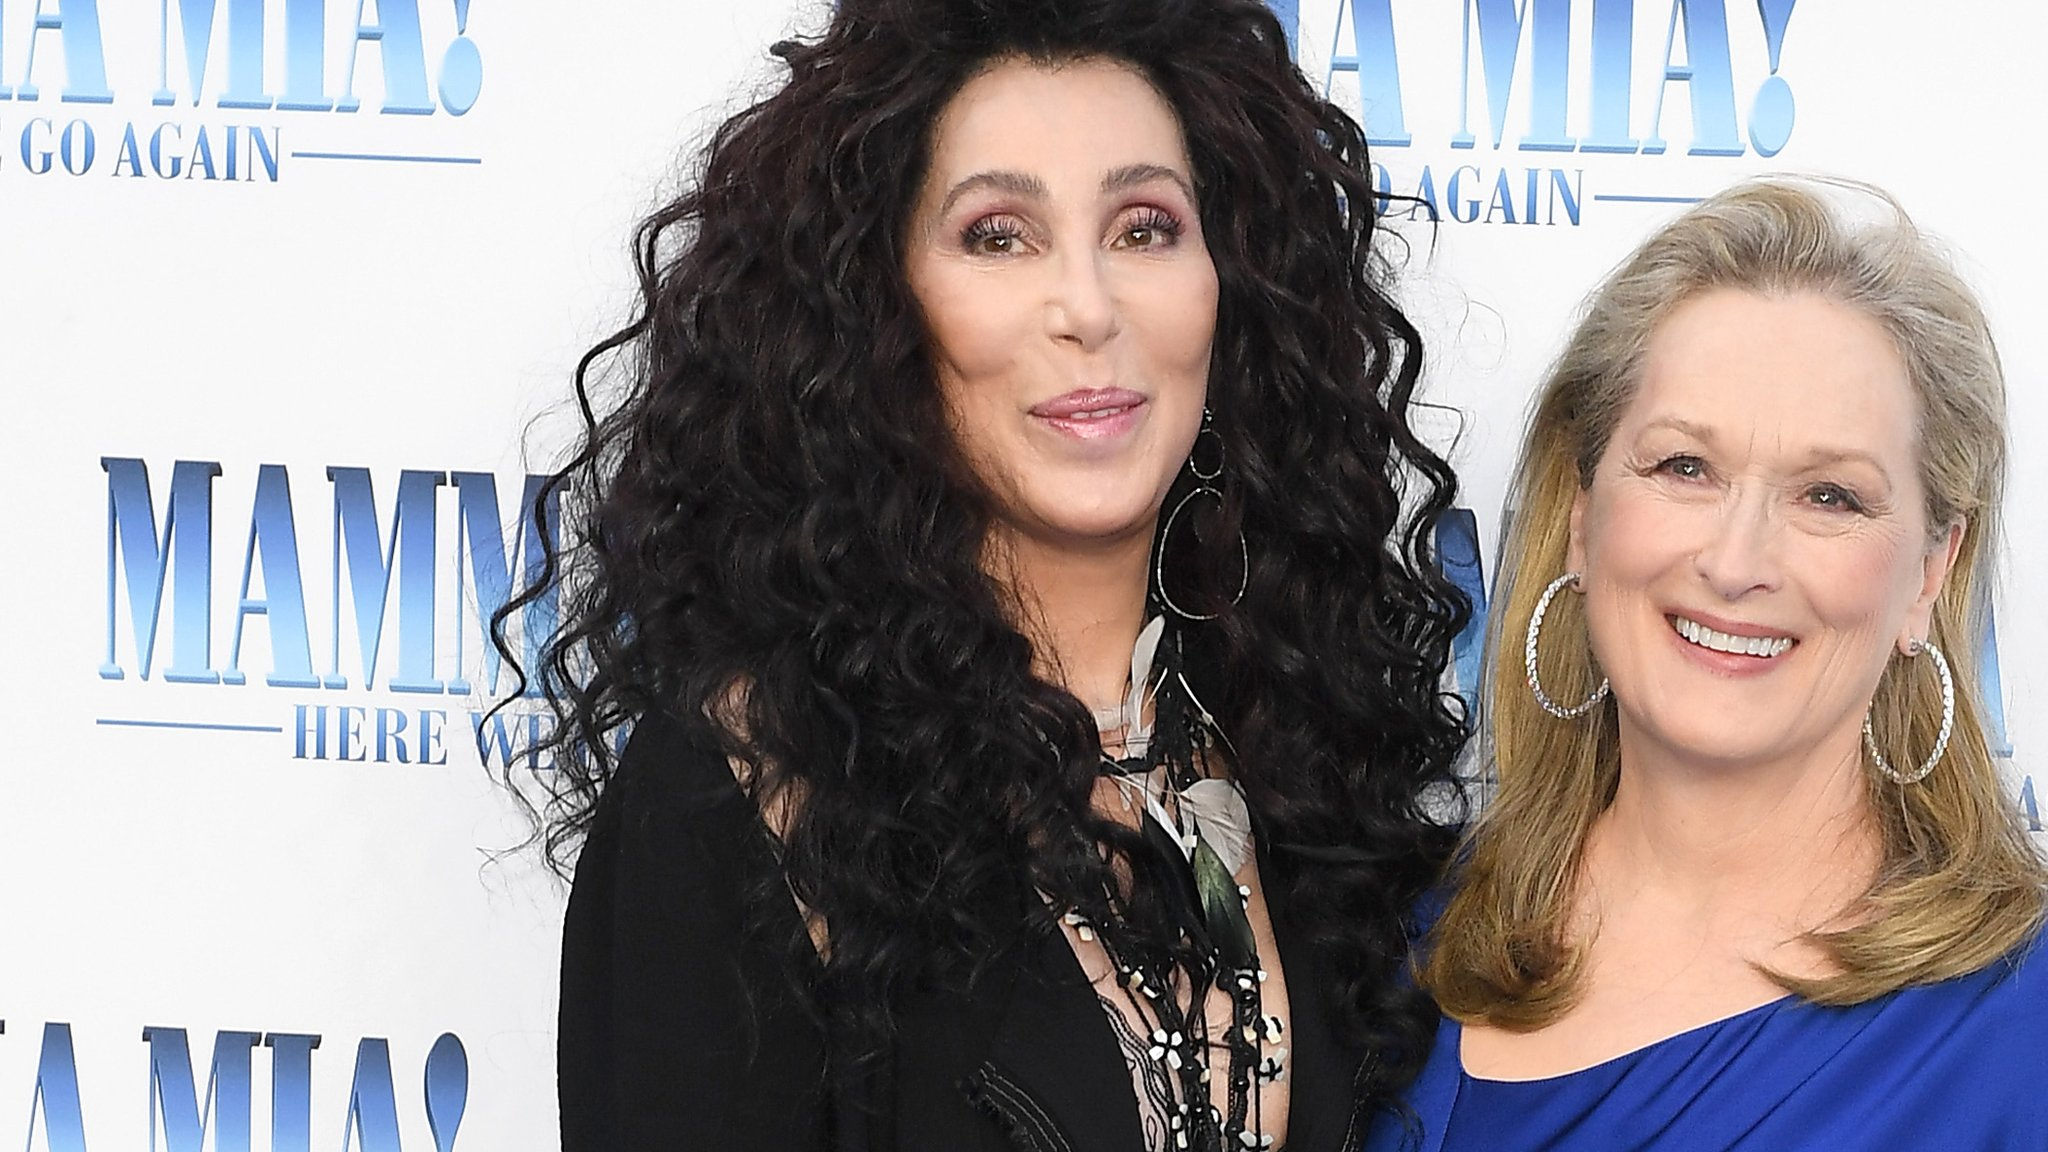 The stars of Mamma Mia film reveal whether or not the sequel is worth the 10-year wait.